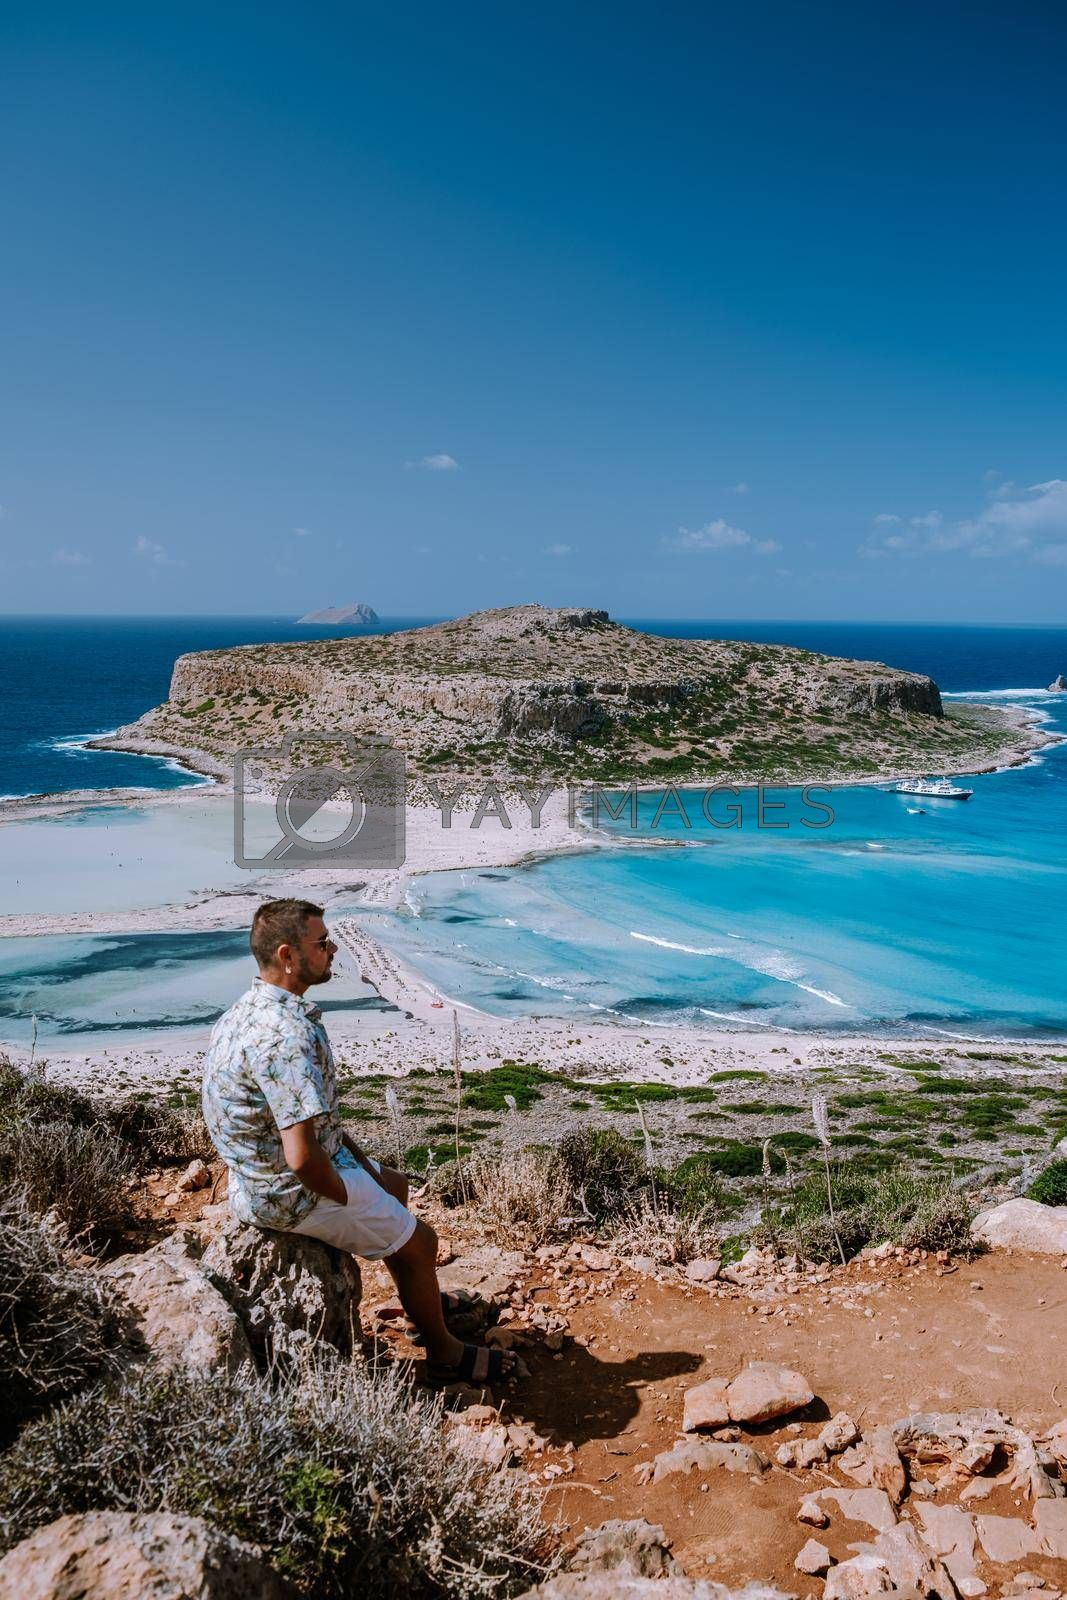 Balos Beach Cret Greece, Balos beach is on of the most beautiful beaches in Greece at the Greek Island young guy visit the beach during vacation